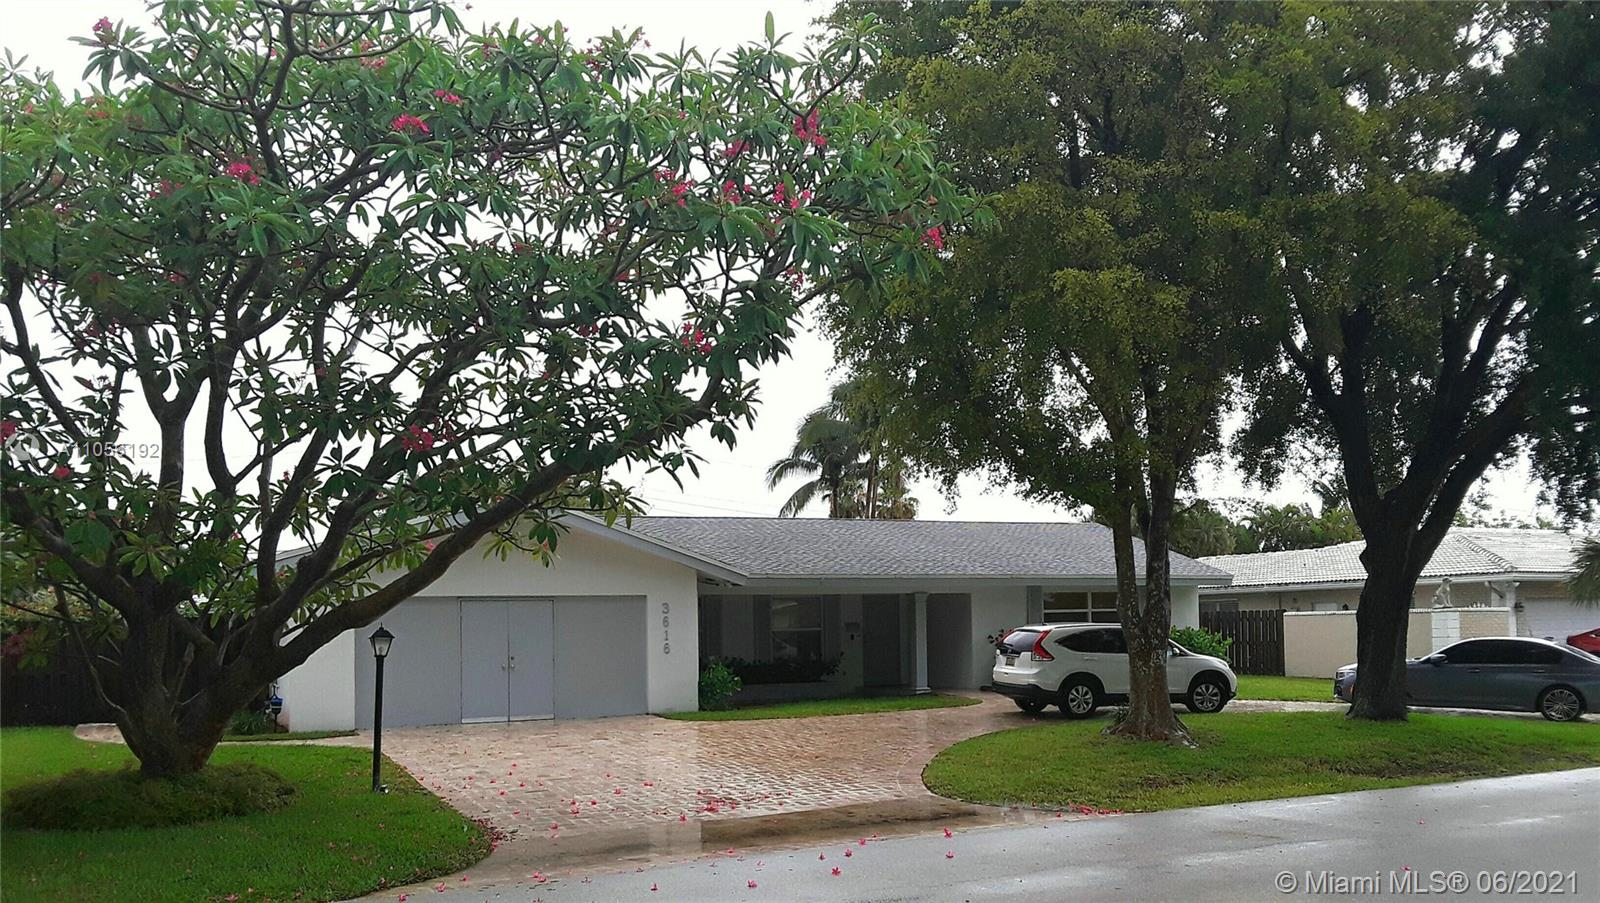 Coral Ridge Country Club - 3616 NE 23rd Ave, Fort Lauderdale, FL 33308